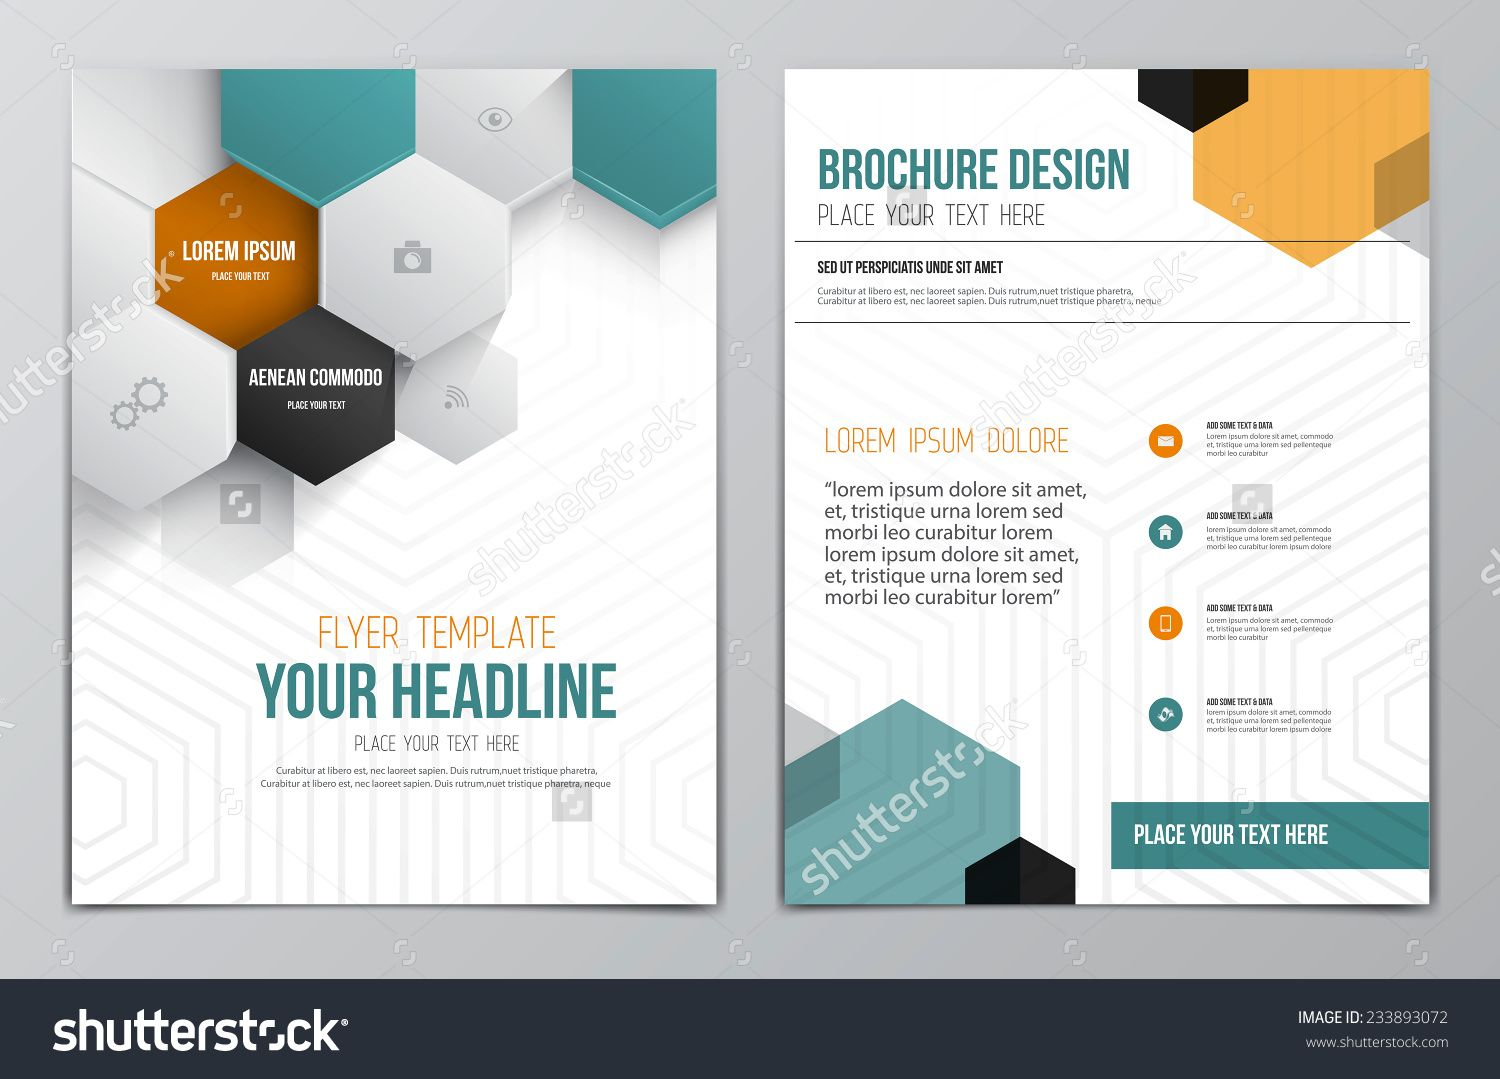 free template brochure design - brochure design template geometric shapes abstract